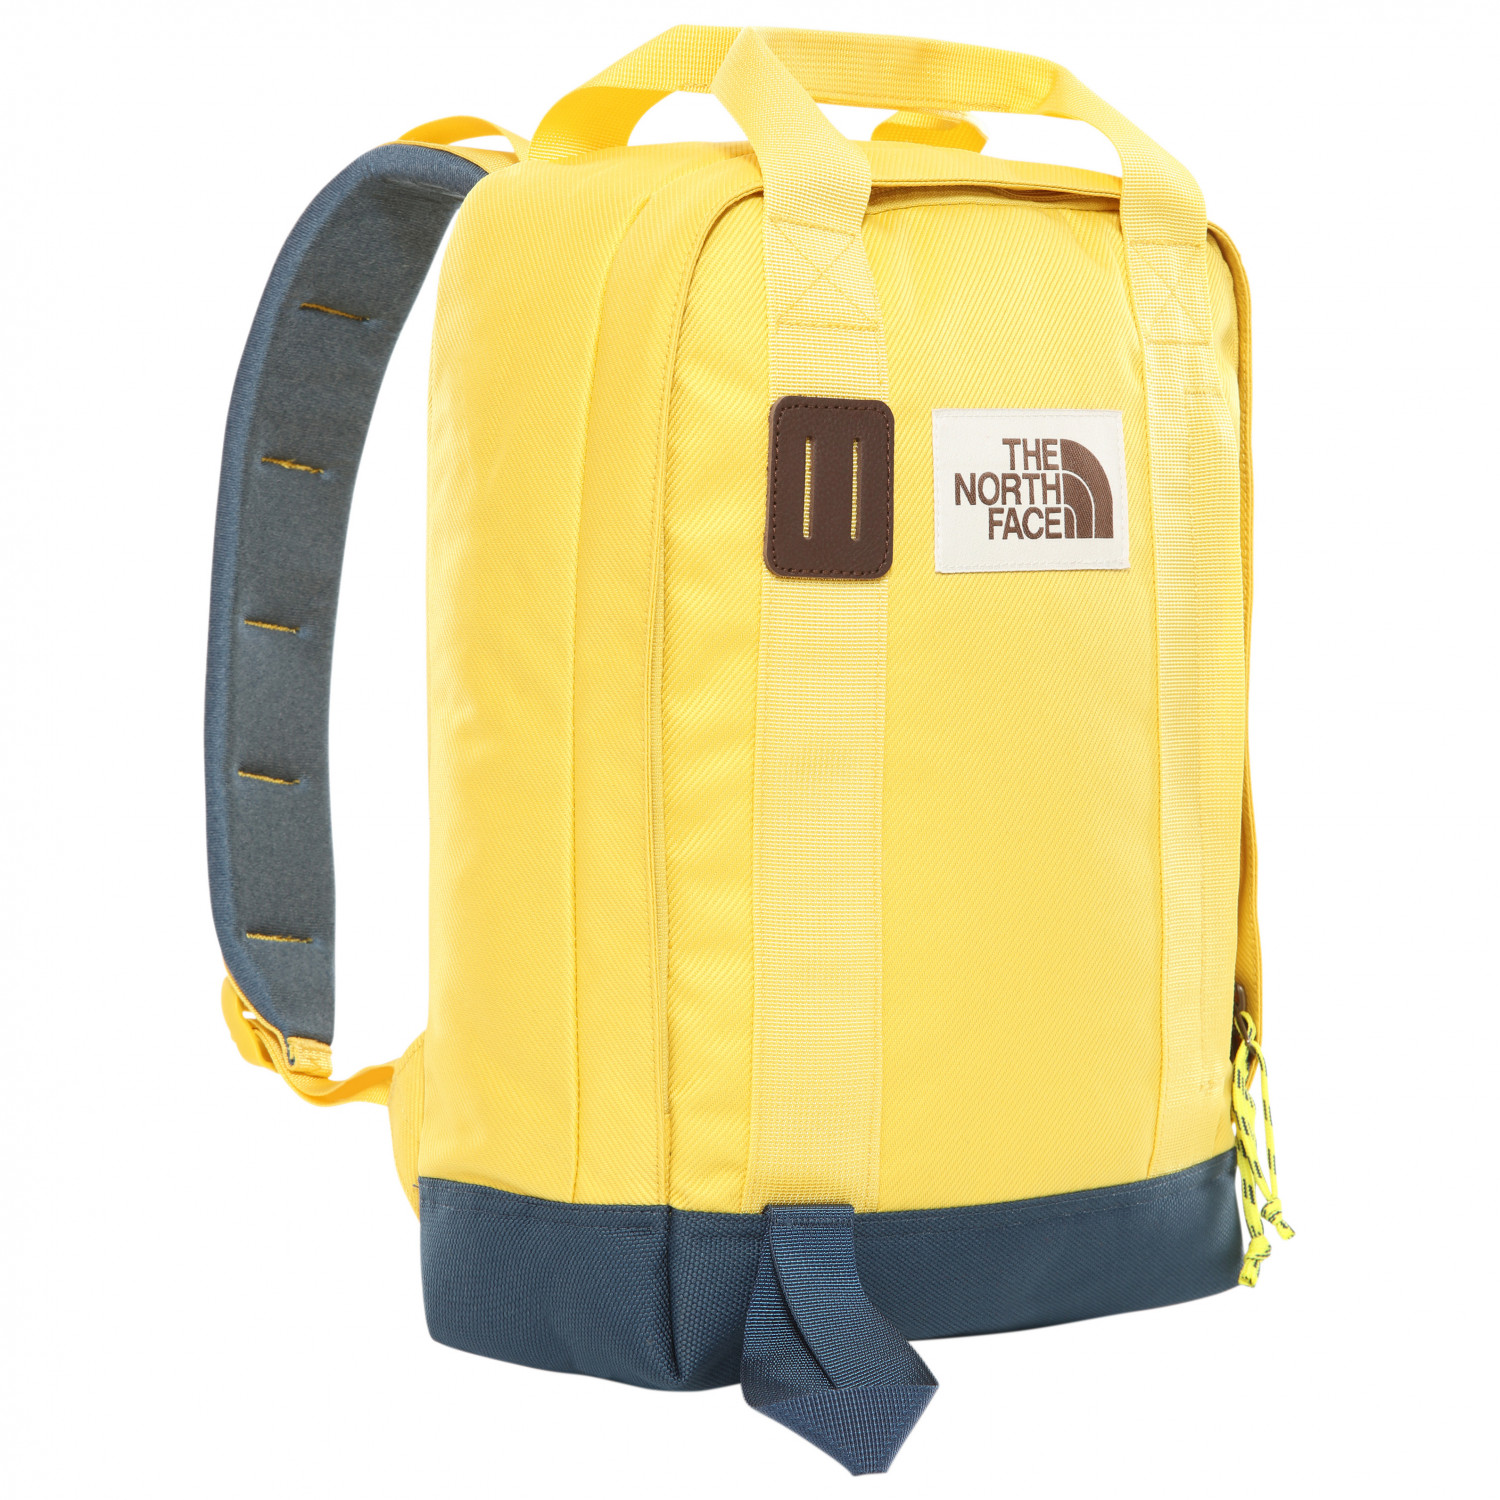 sac a dos tote the north face